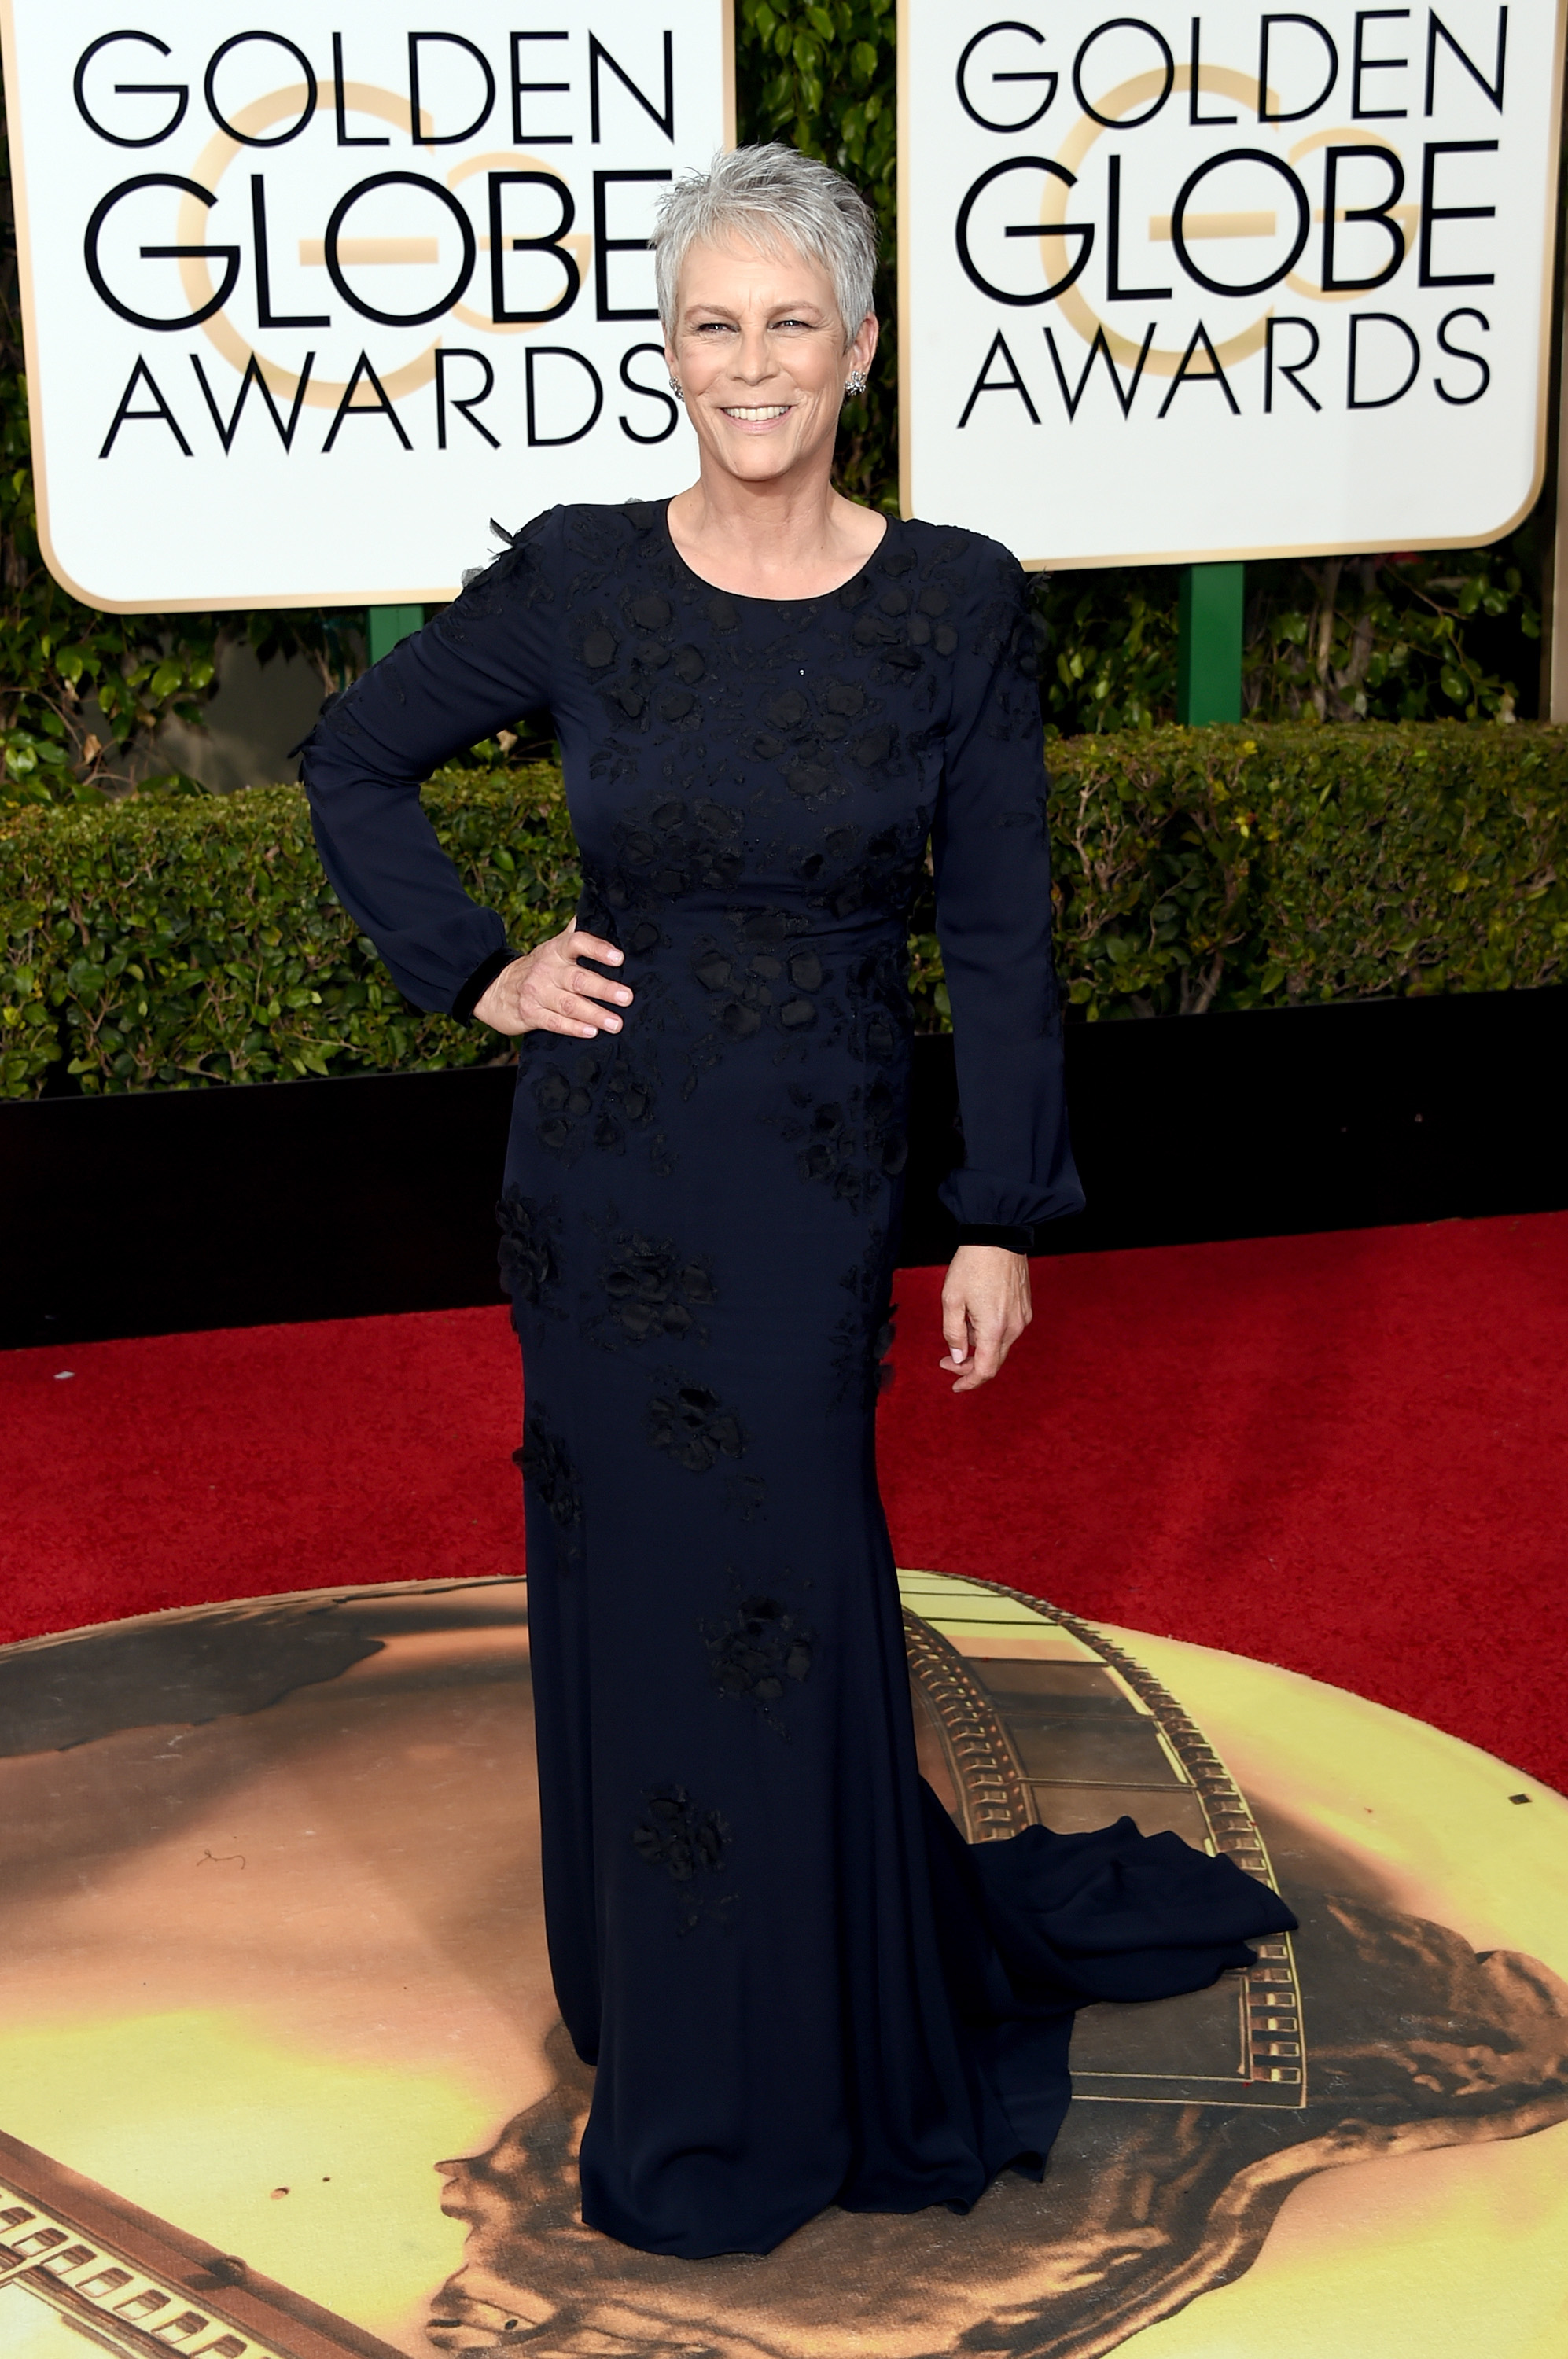 Jamie Lee Curtis arrives to the 73rd Annual Golden Globe Awards on Jan. 10, 2016 in Beverly Hills.